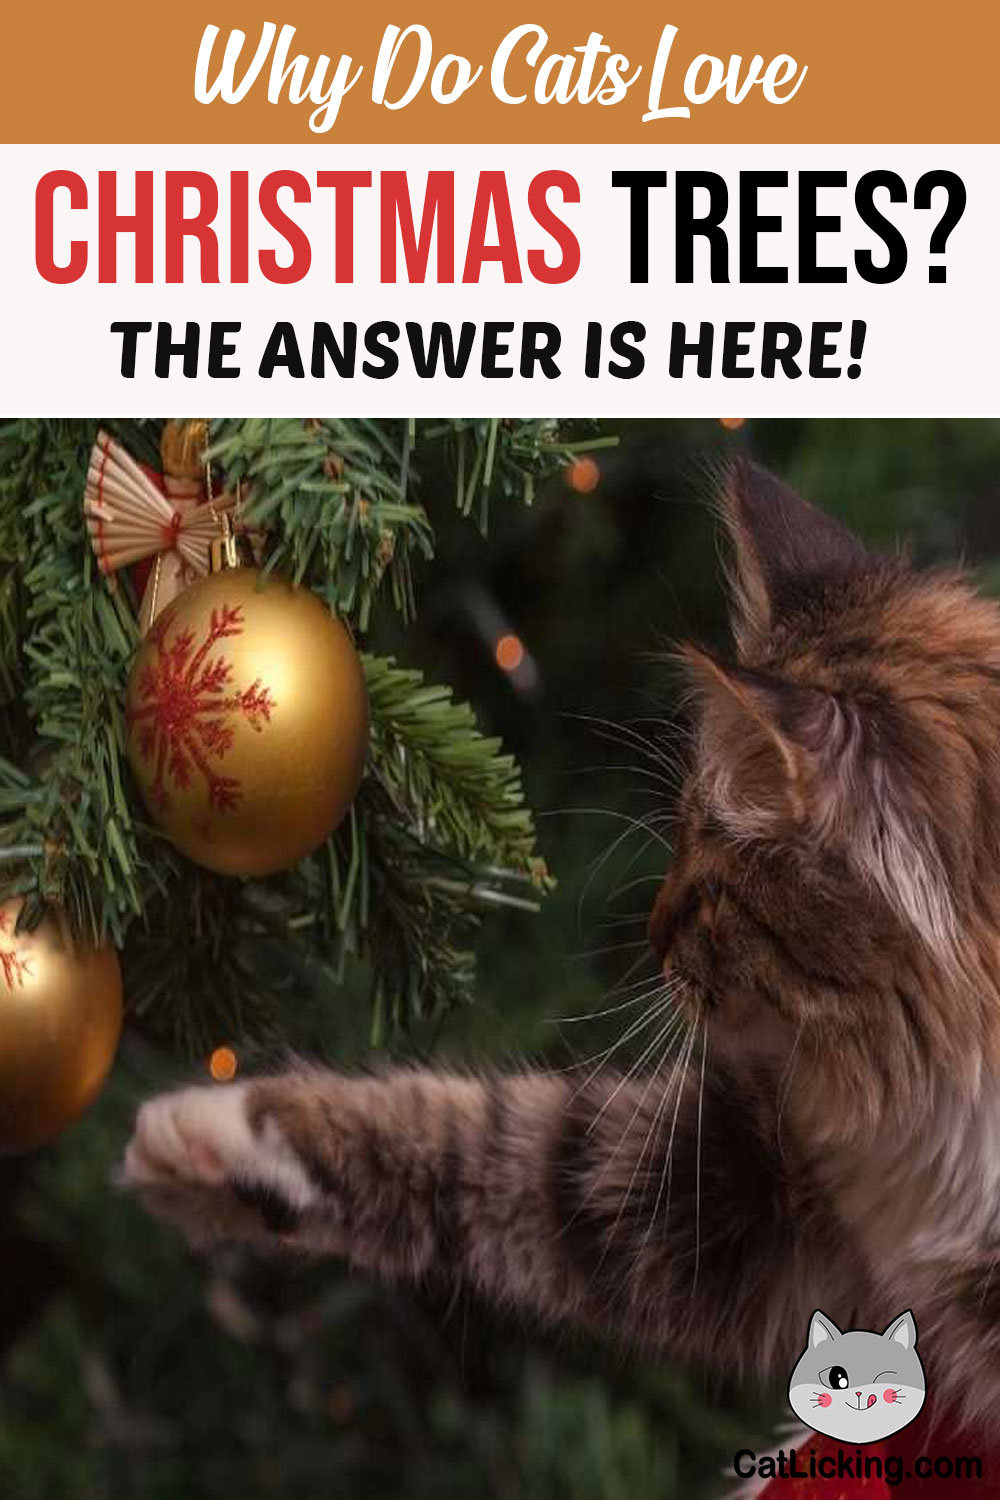 Why Do Cats Love Christmas Trees